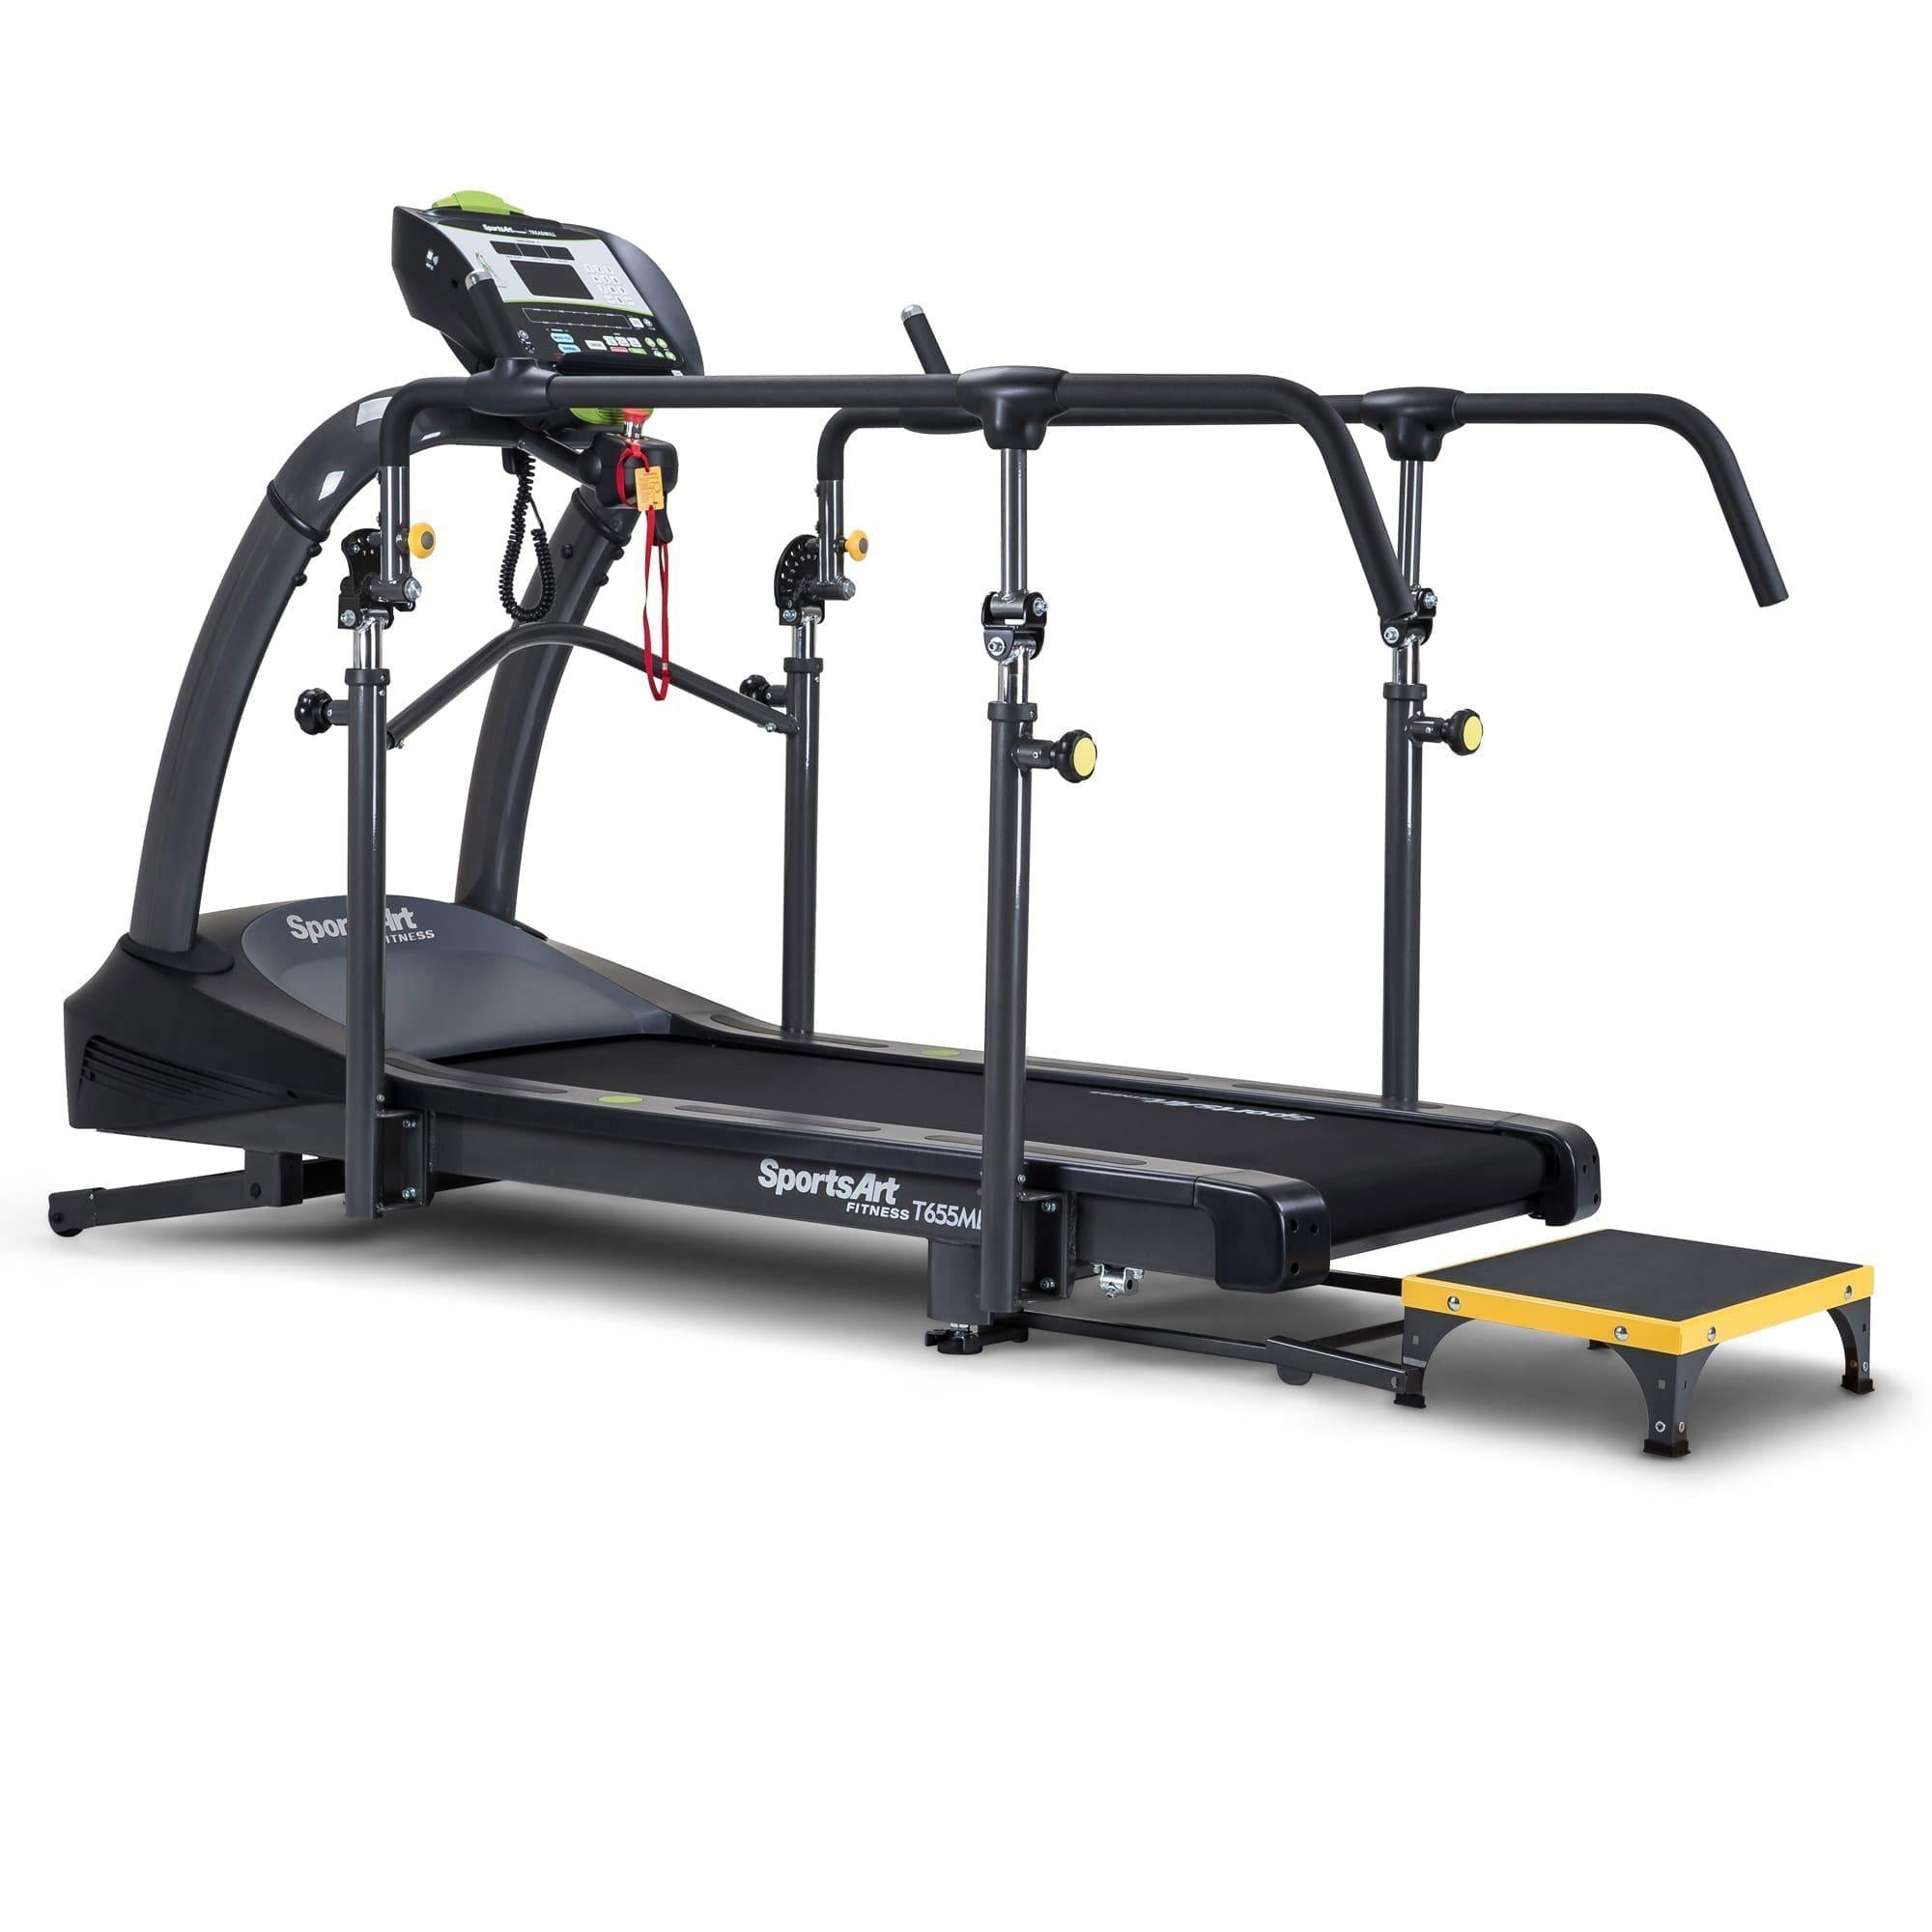 SportsArt T655MD Medical Treadmill with LCD Screen and Adjustable Medical Rails-Treadmill-SportsArt-Cardio Online